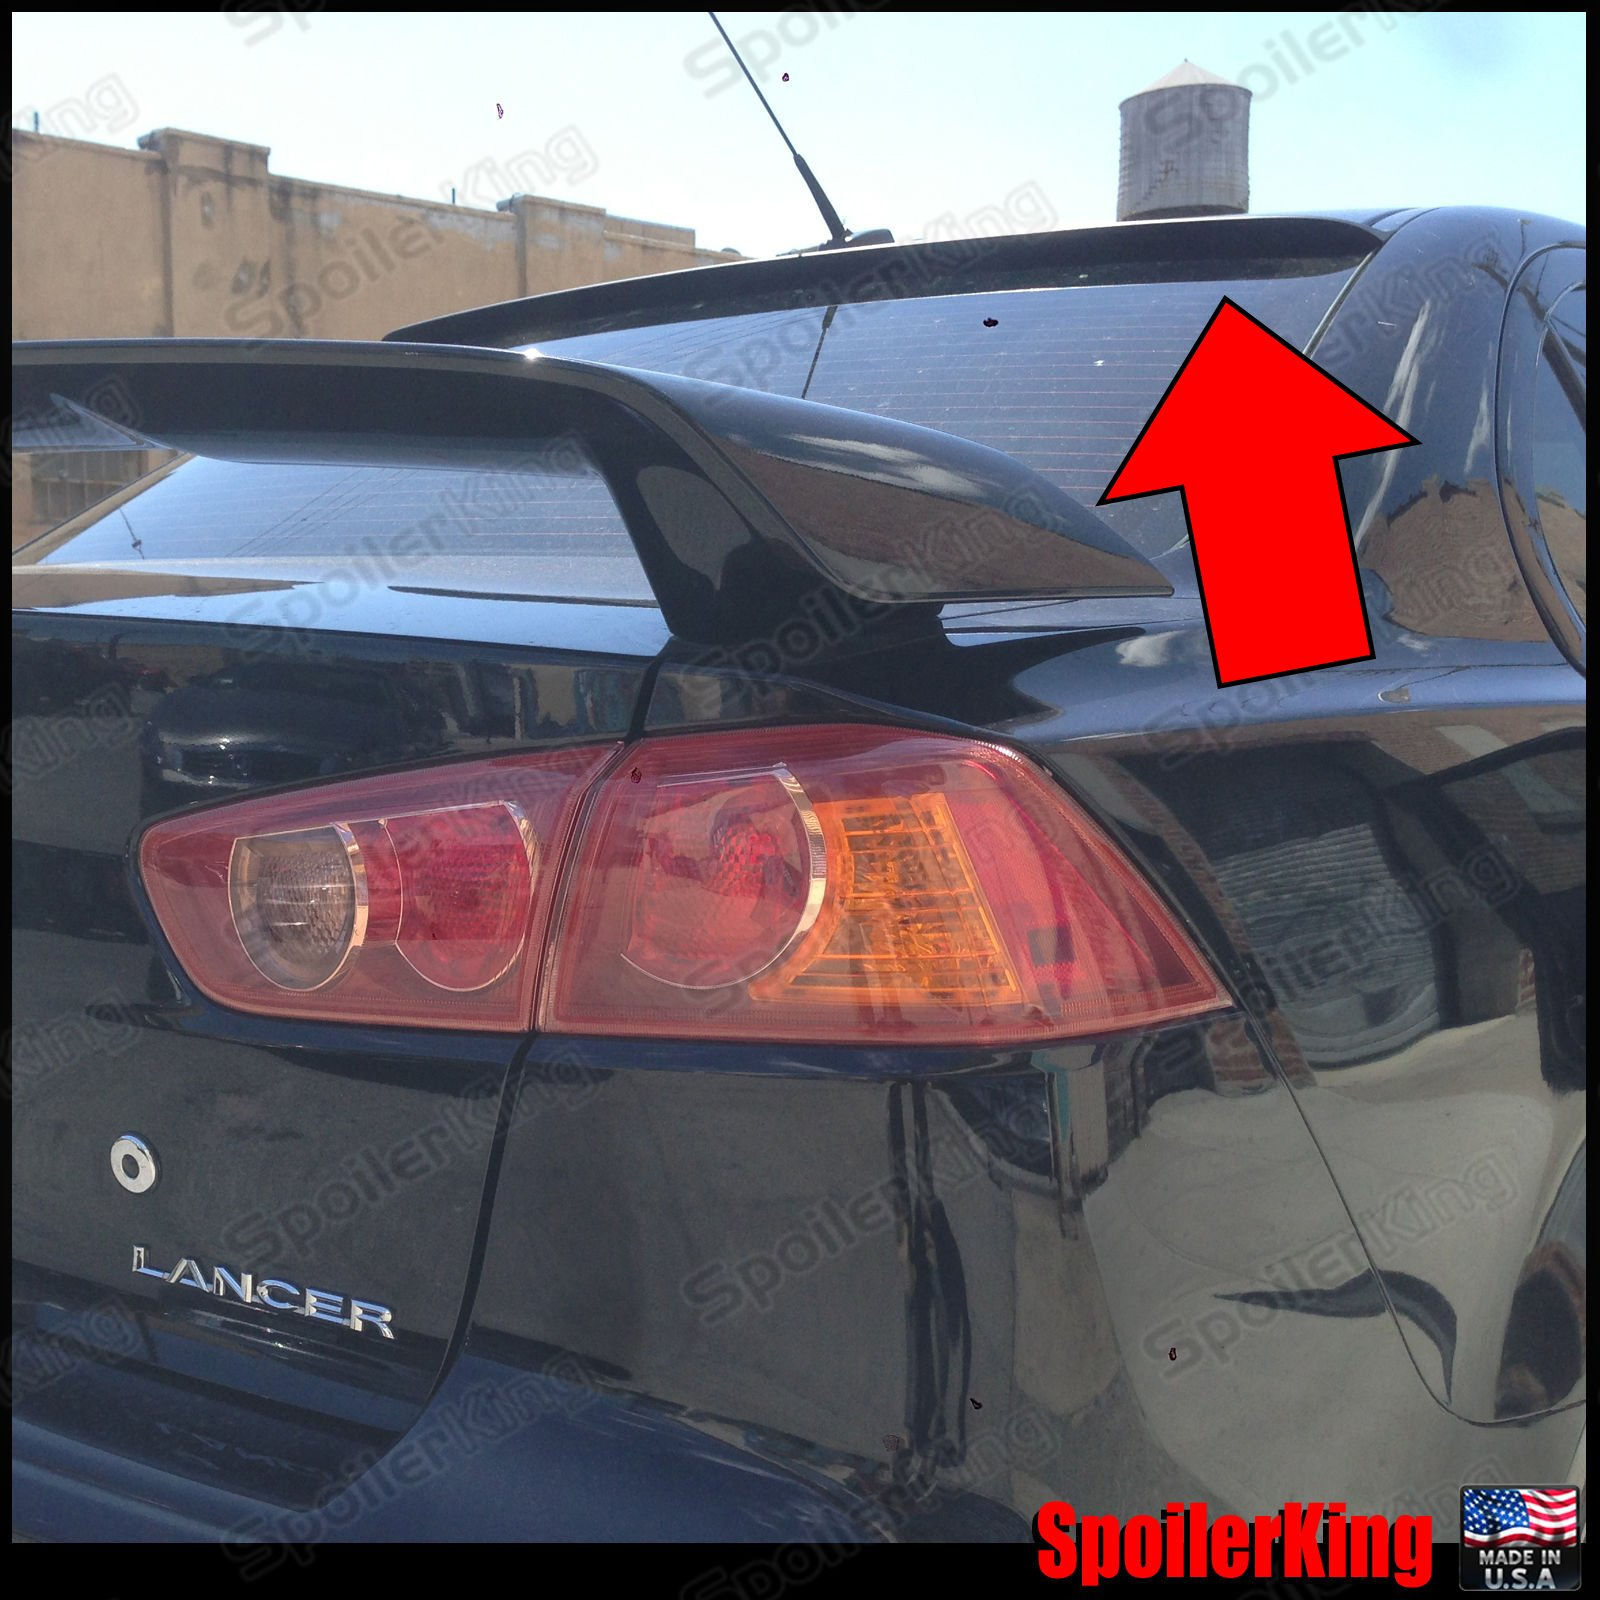 SCITOO Replacement fit for Black ABS Rear Trunk Spoiler Wing 2008-2017 Mitsubishi Lancer 56 Inch x 7.87 Inch